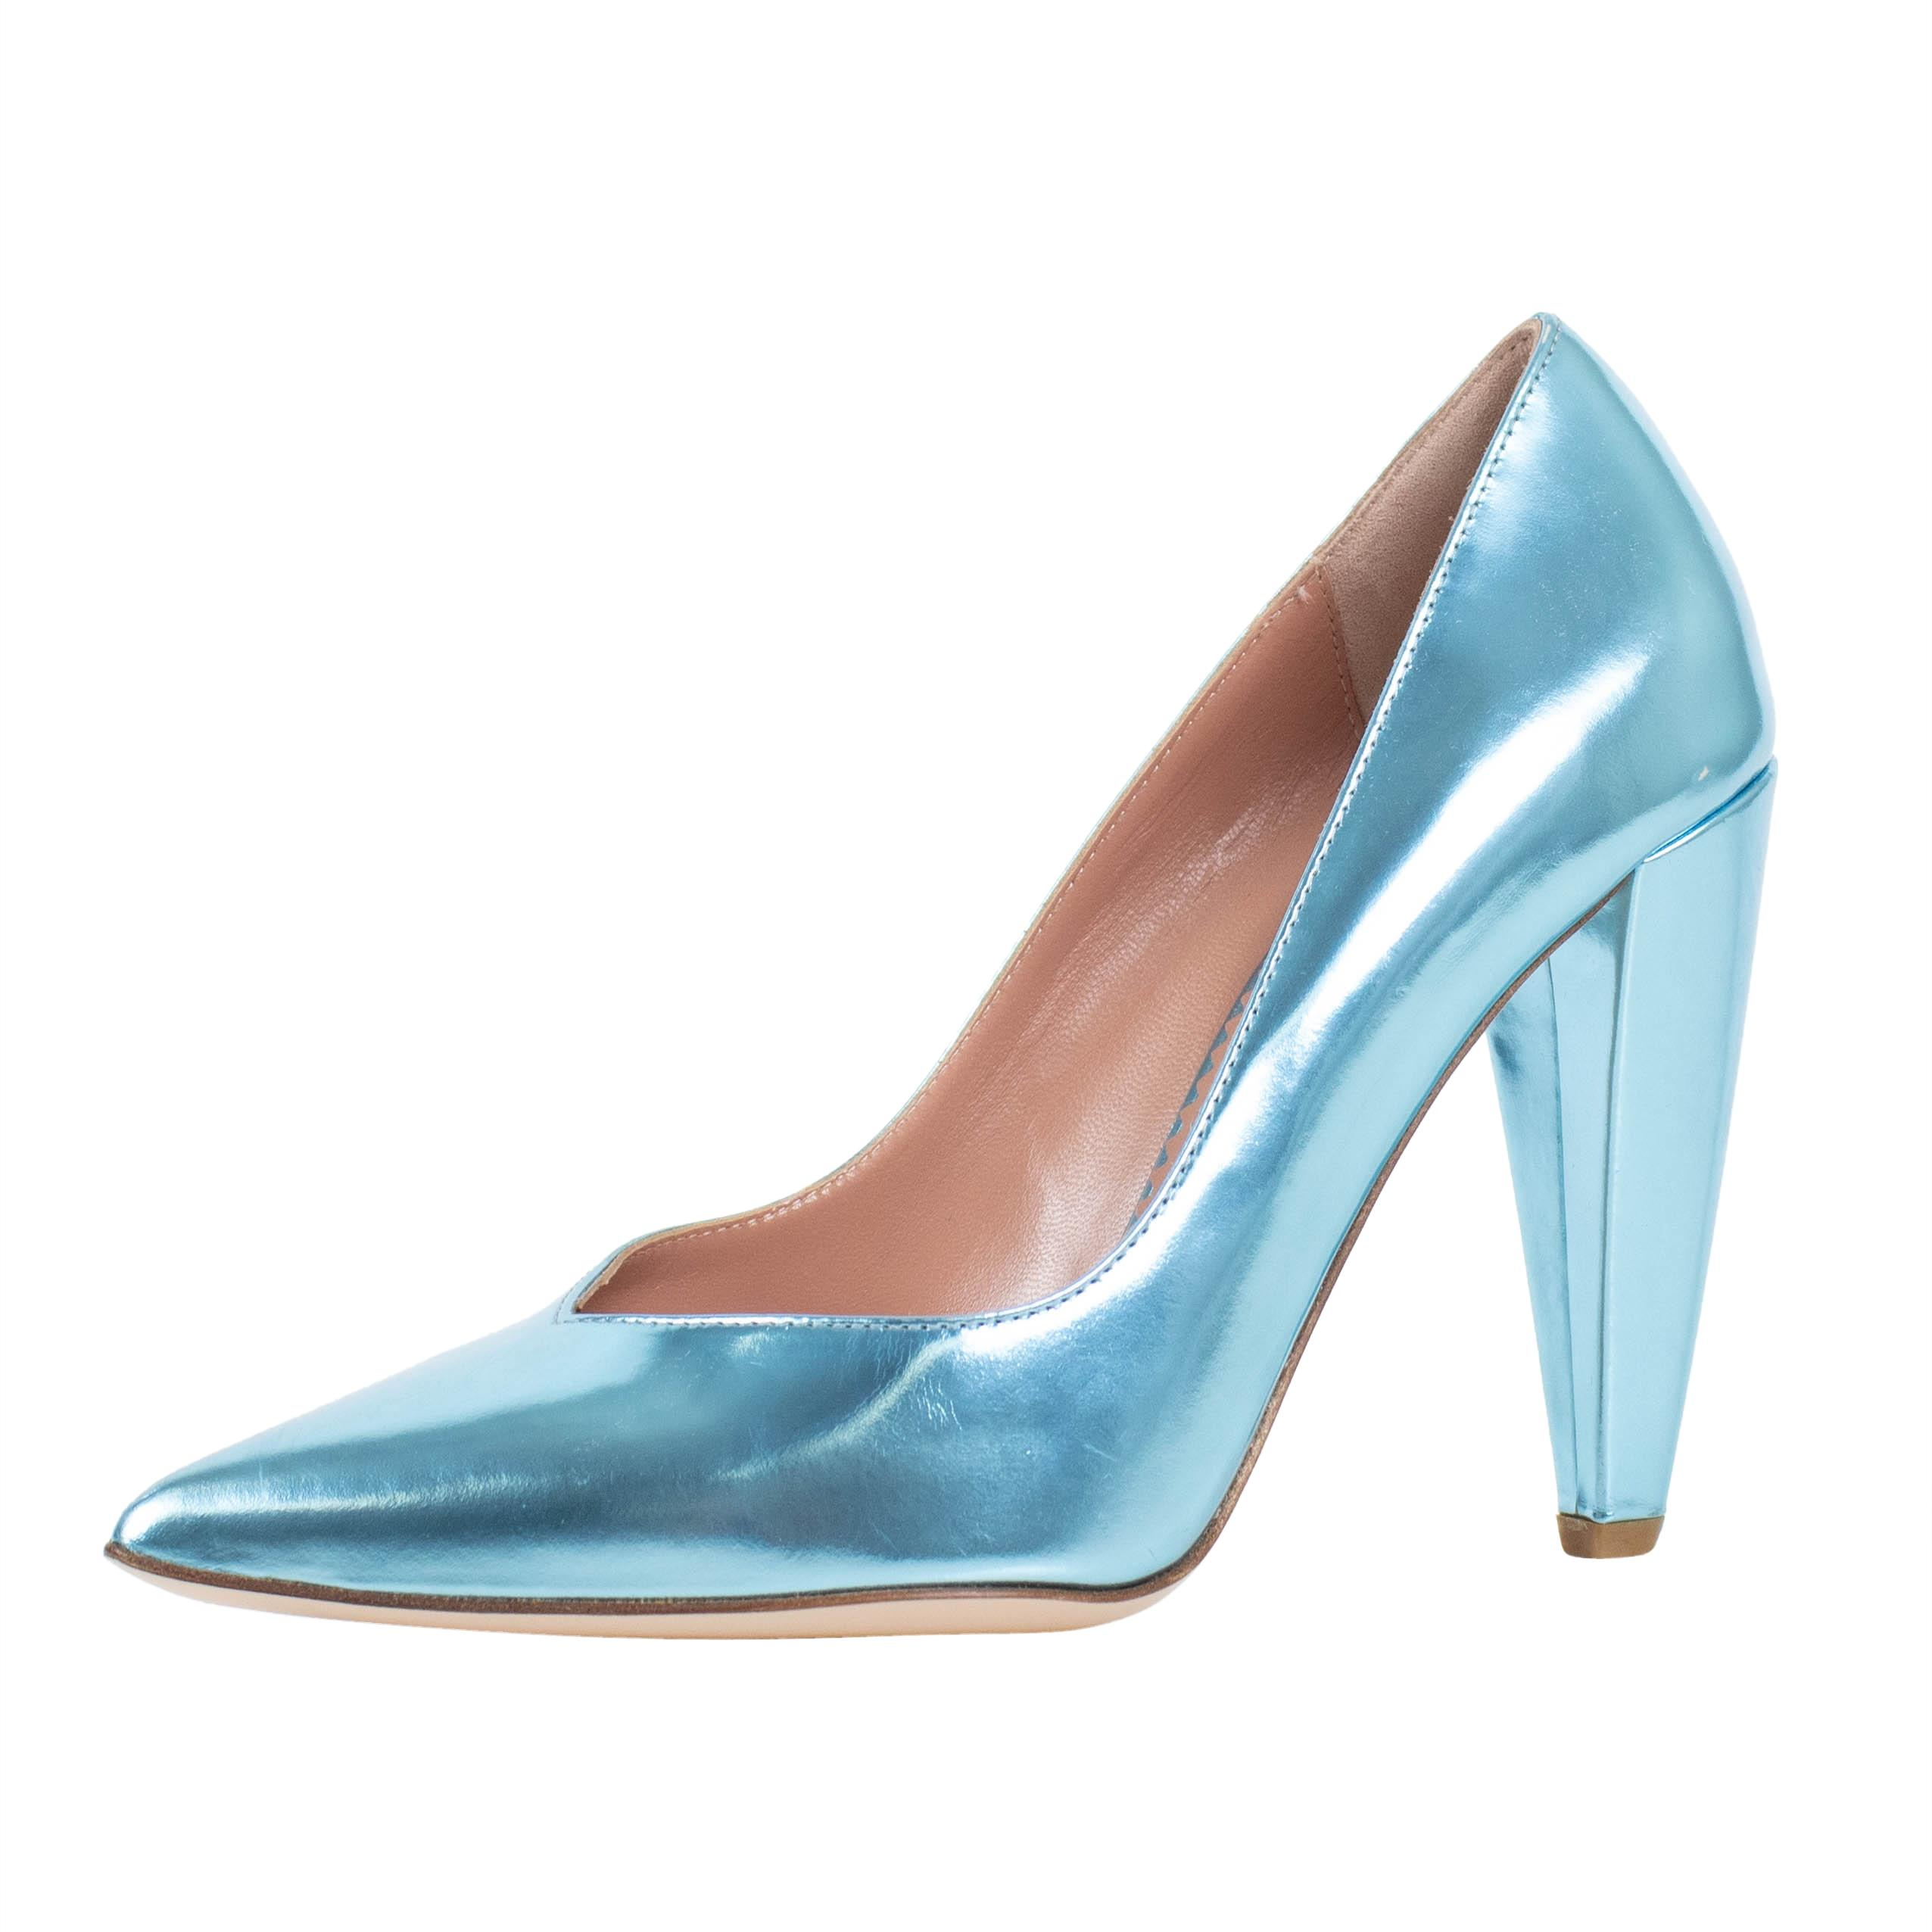 RED Valentino Blue Metallic Pointed Laminated Leather Pumps Size US 7 Regular (M, B)